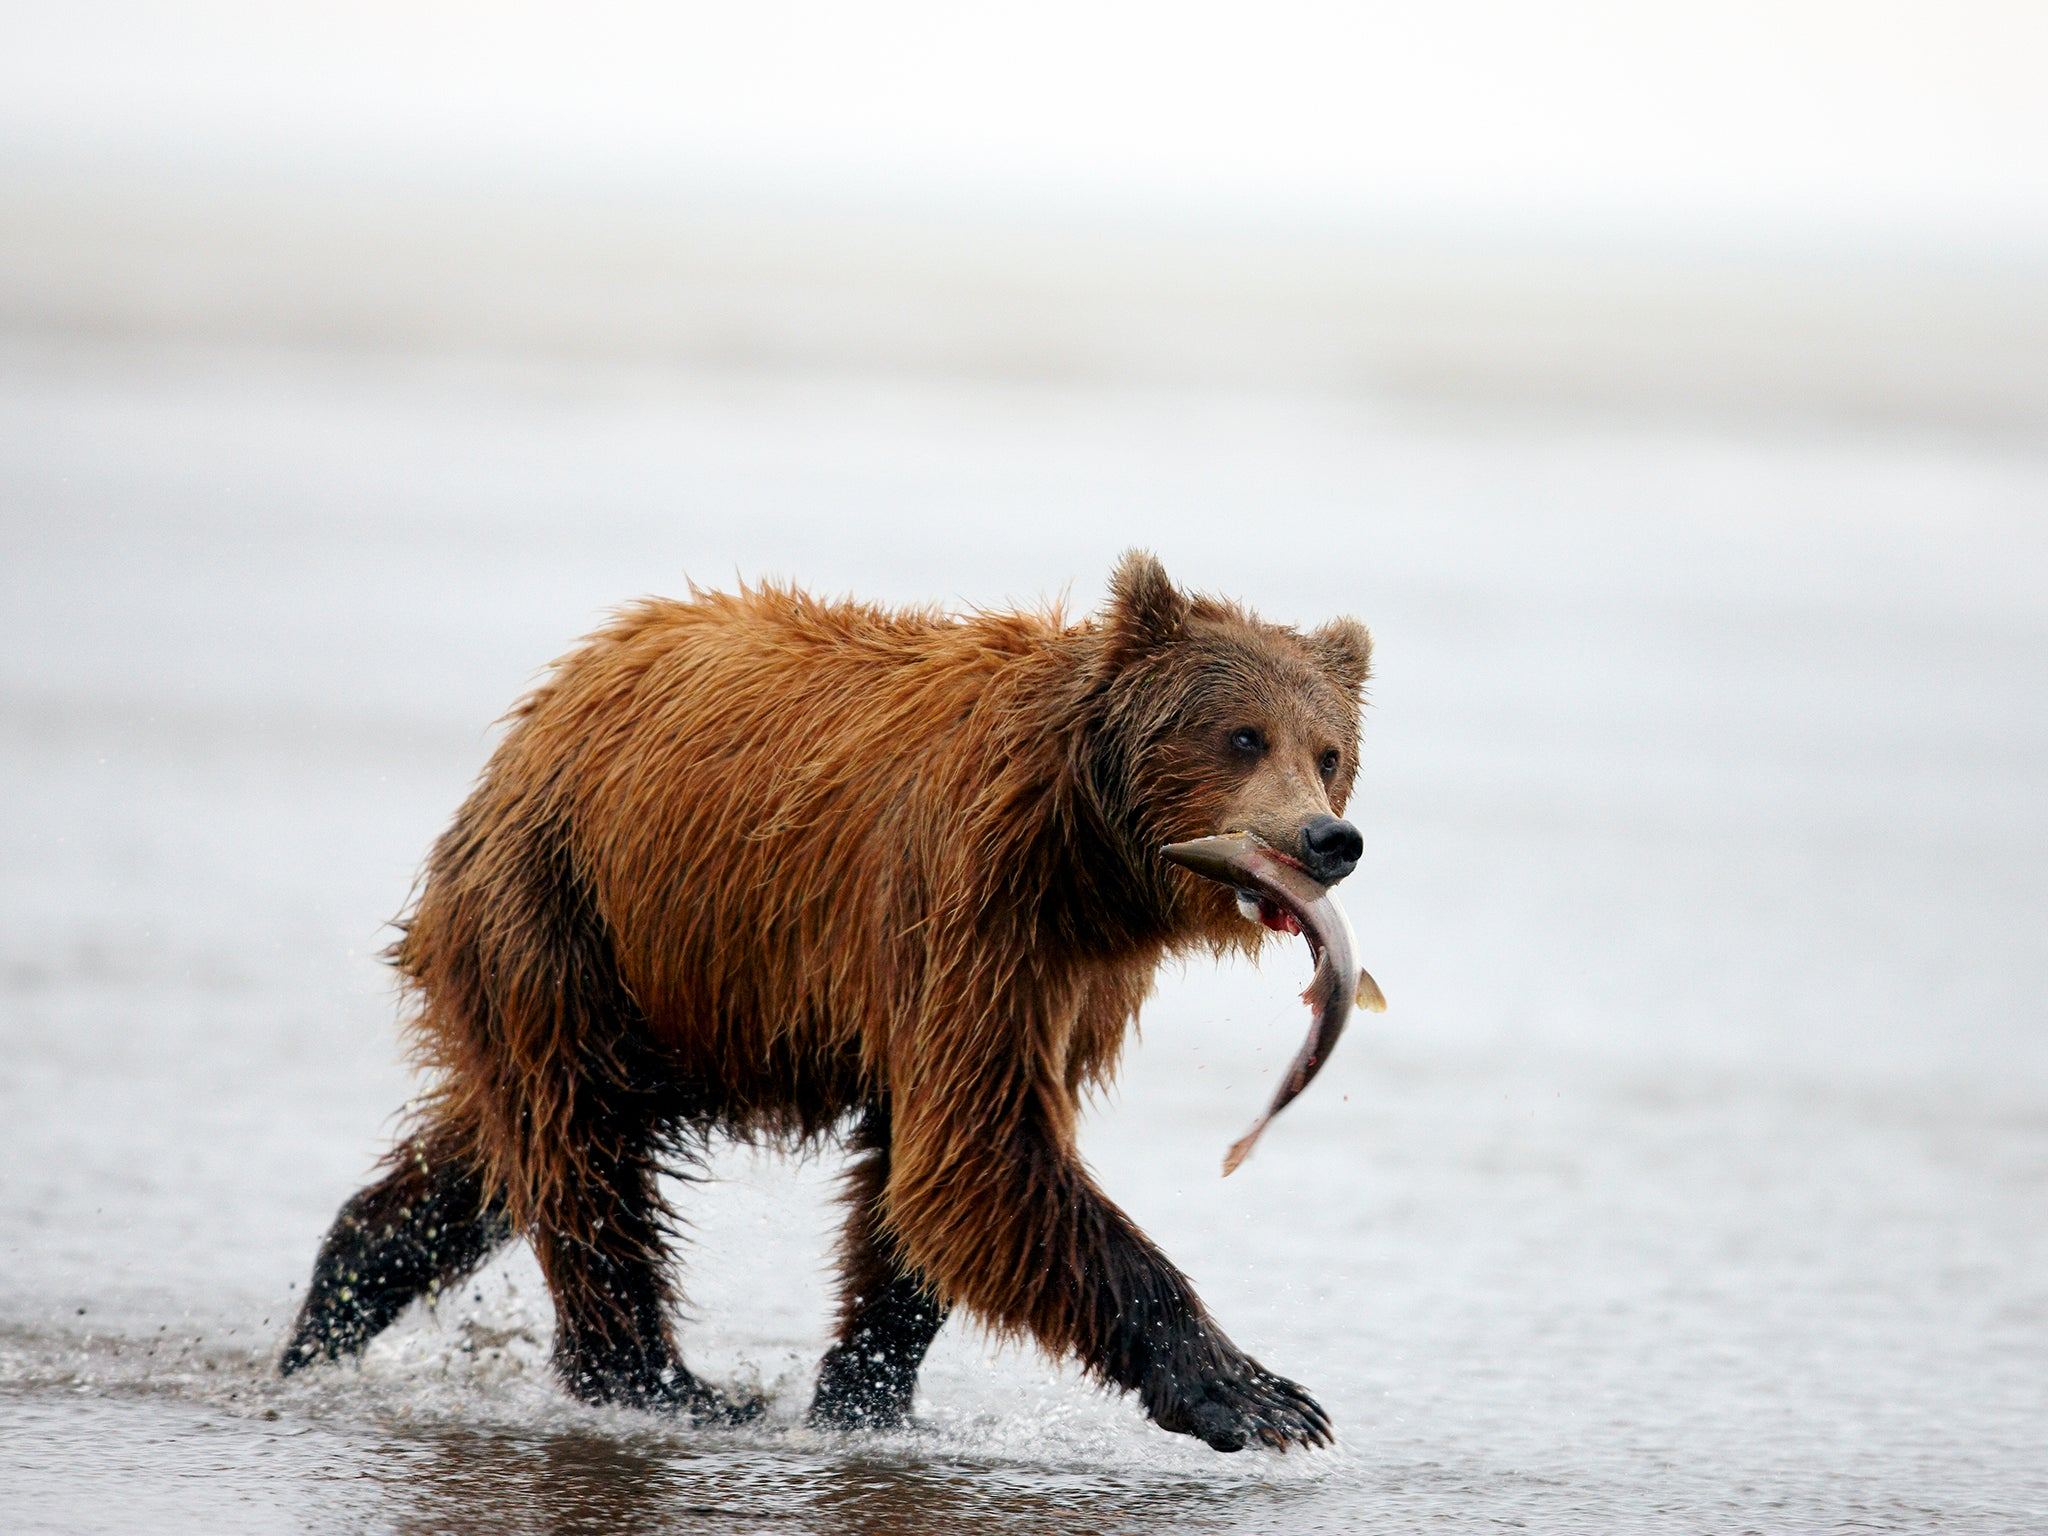 Brown bears choosing a vegetarian diet over salmon due to climate change